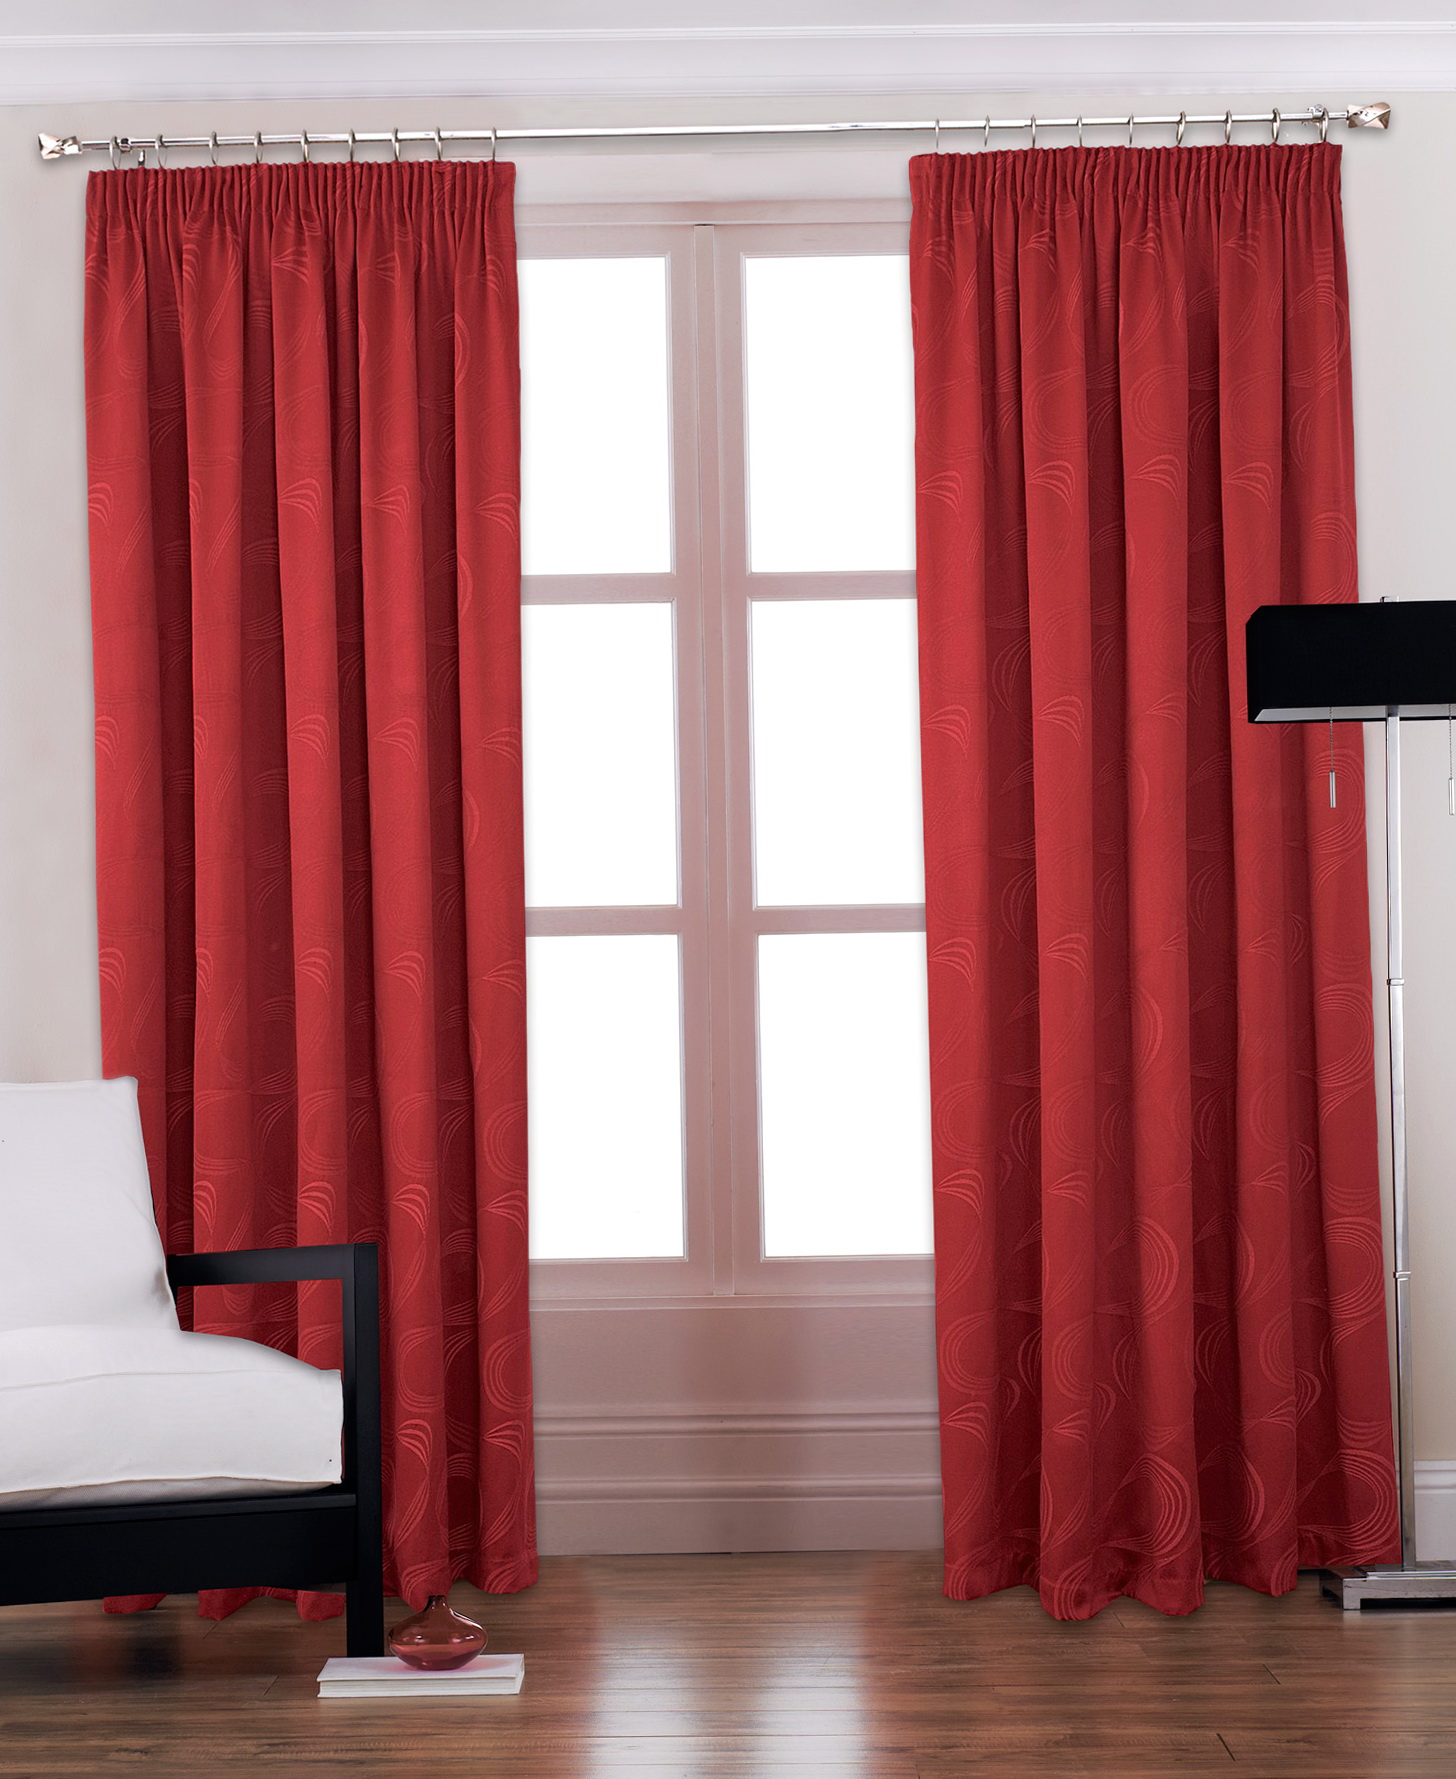 Kitchen Curtains For Sale On Ebay